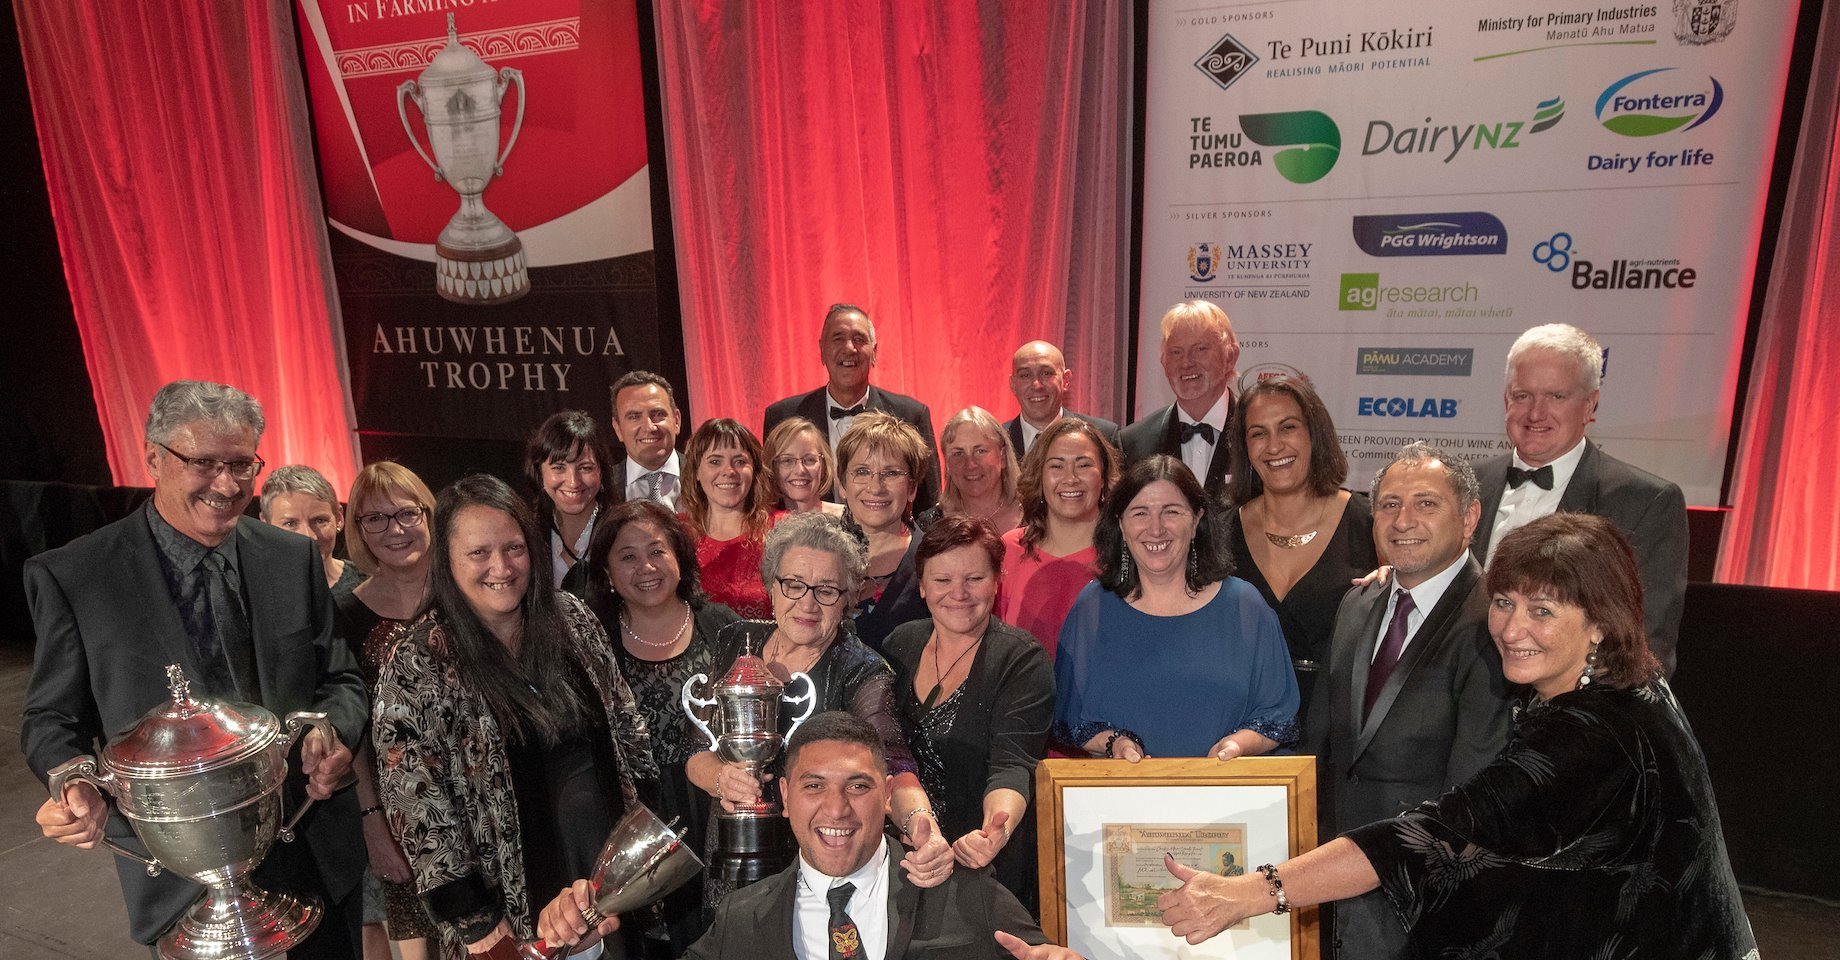 Te Puni Kōkiri supports the 2018 Ahuwhenua Trophy BNZ Māori Excellence in Farming and Young Māori Farmer Awards and congratulates all winners, finalists and their whānau. Photo by Alphapix.nz.